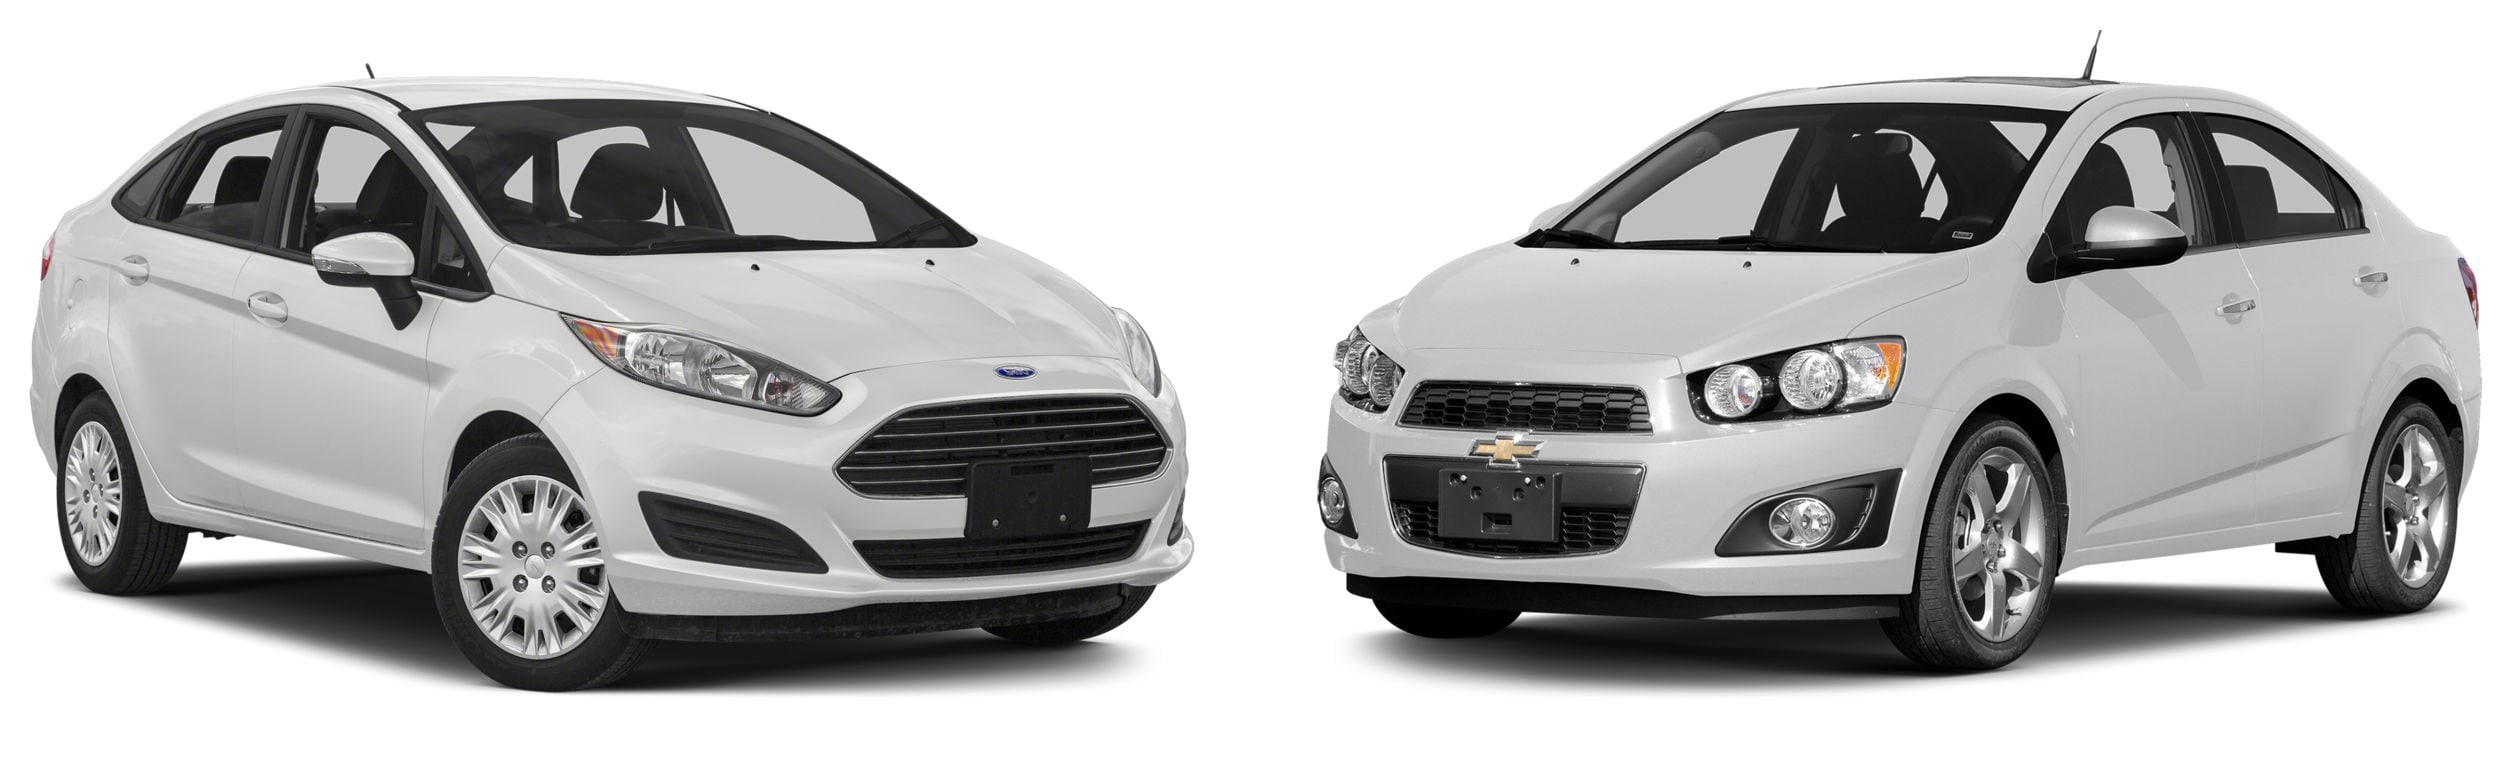 The 2015 Ford Fiesta vs. the 2015 Chevrolet Sonic.jpg